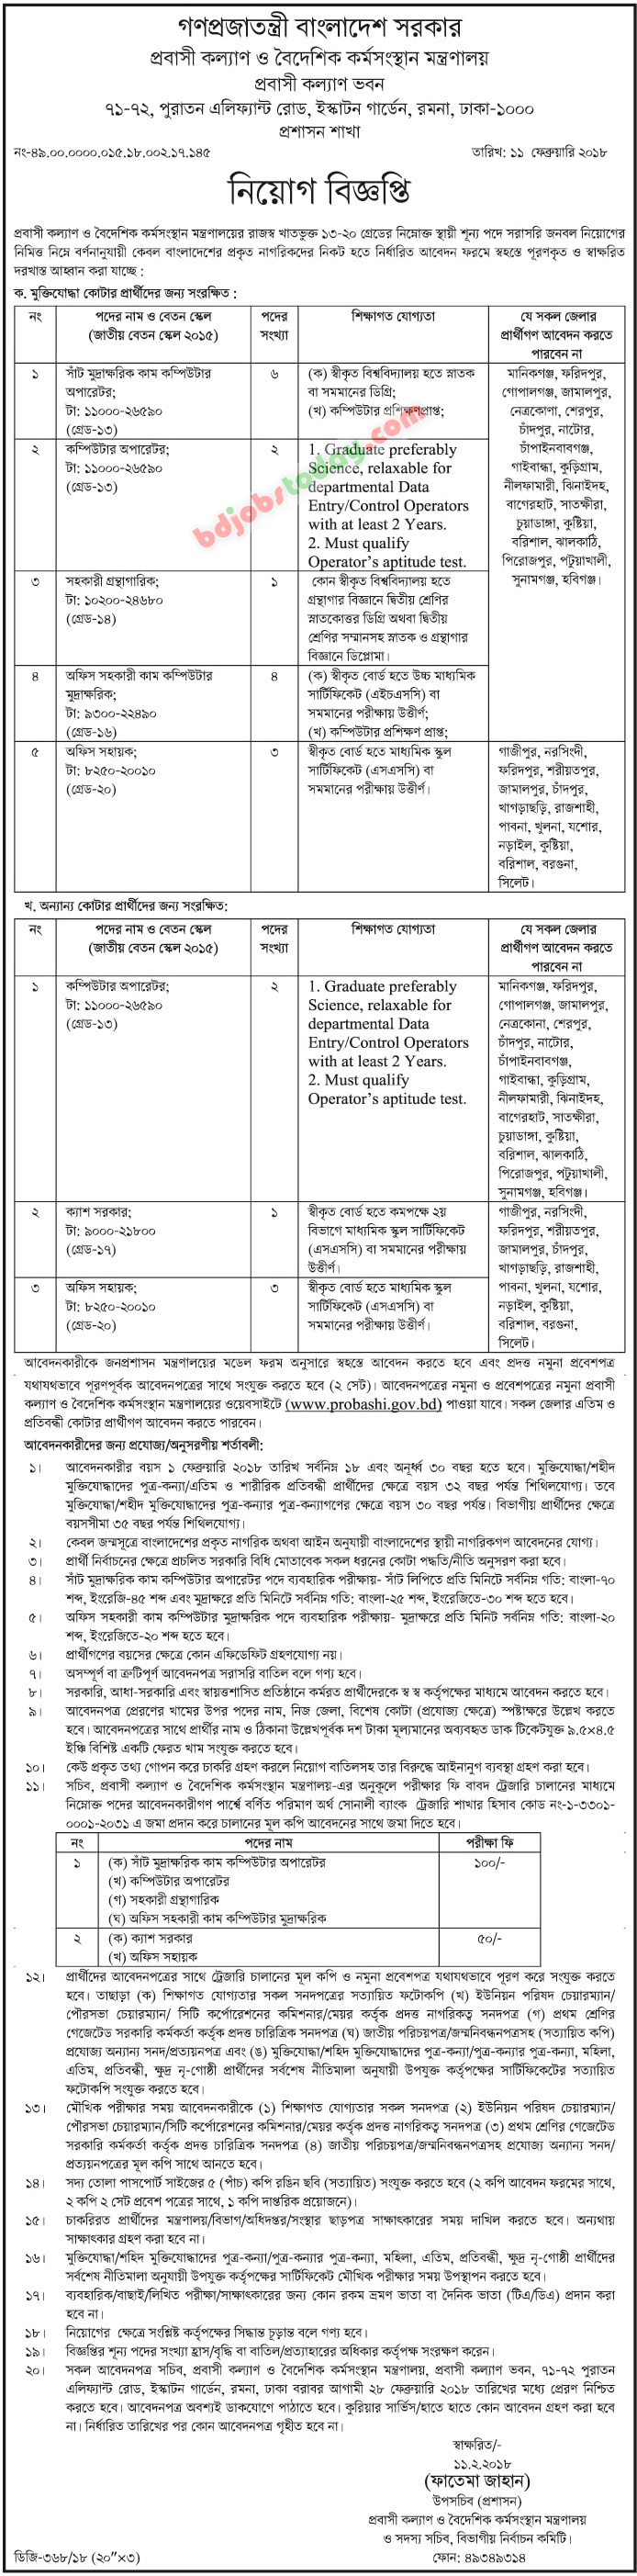 Ministry of Expatriates Welfare and Overseas Employment jobs